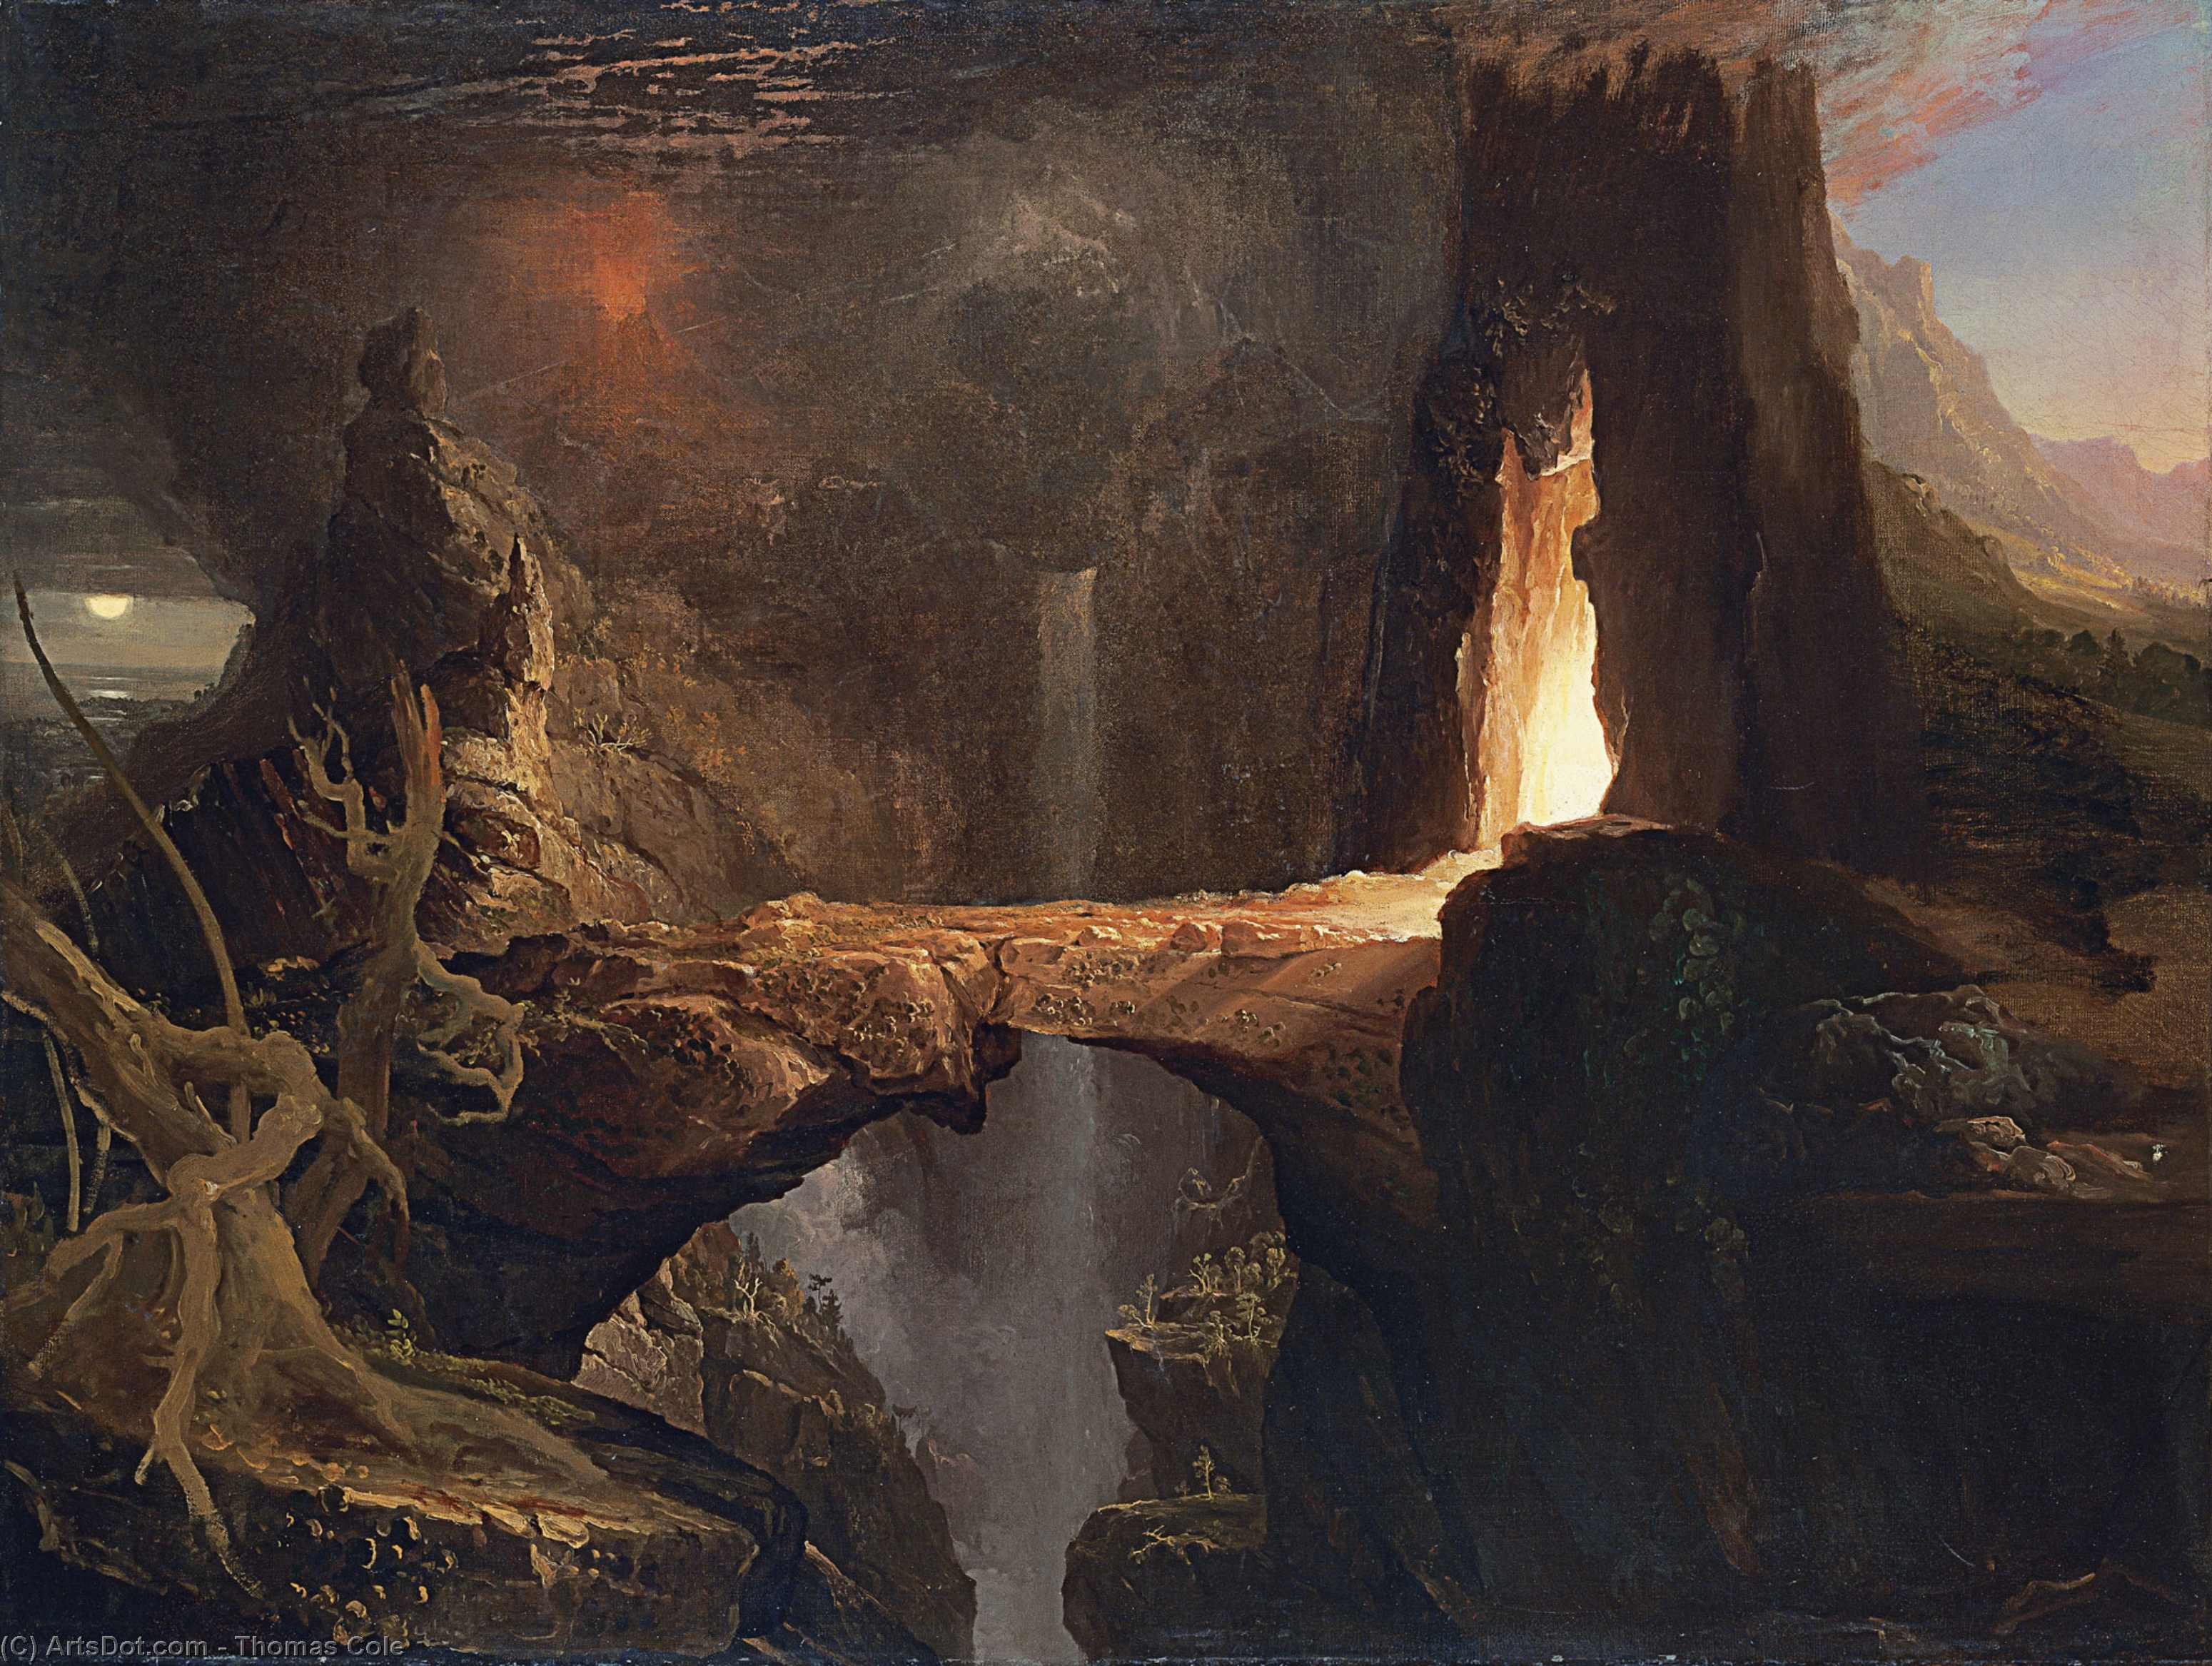 Expulsion, Moon and Firelight, Oil On Canvas by Thomas Cole (1801-1848, United Kingdom)